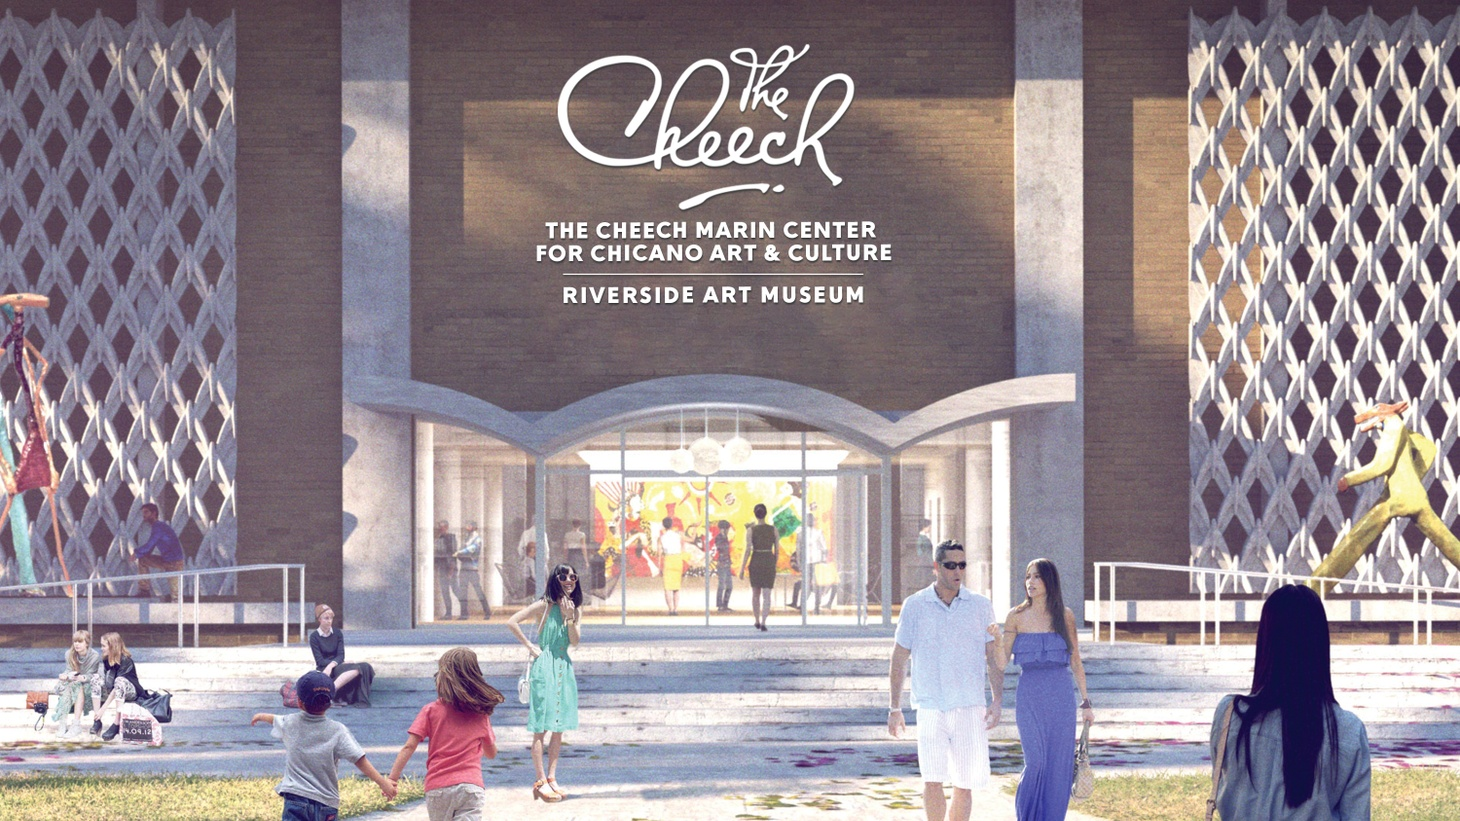 A rendering of the exterior of the The Cheech Marin Center for Chicano Art, Culture and Industry of the Riverside Art Museum.